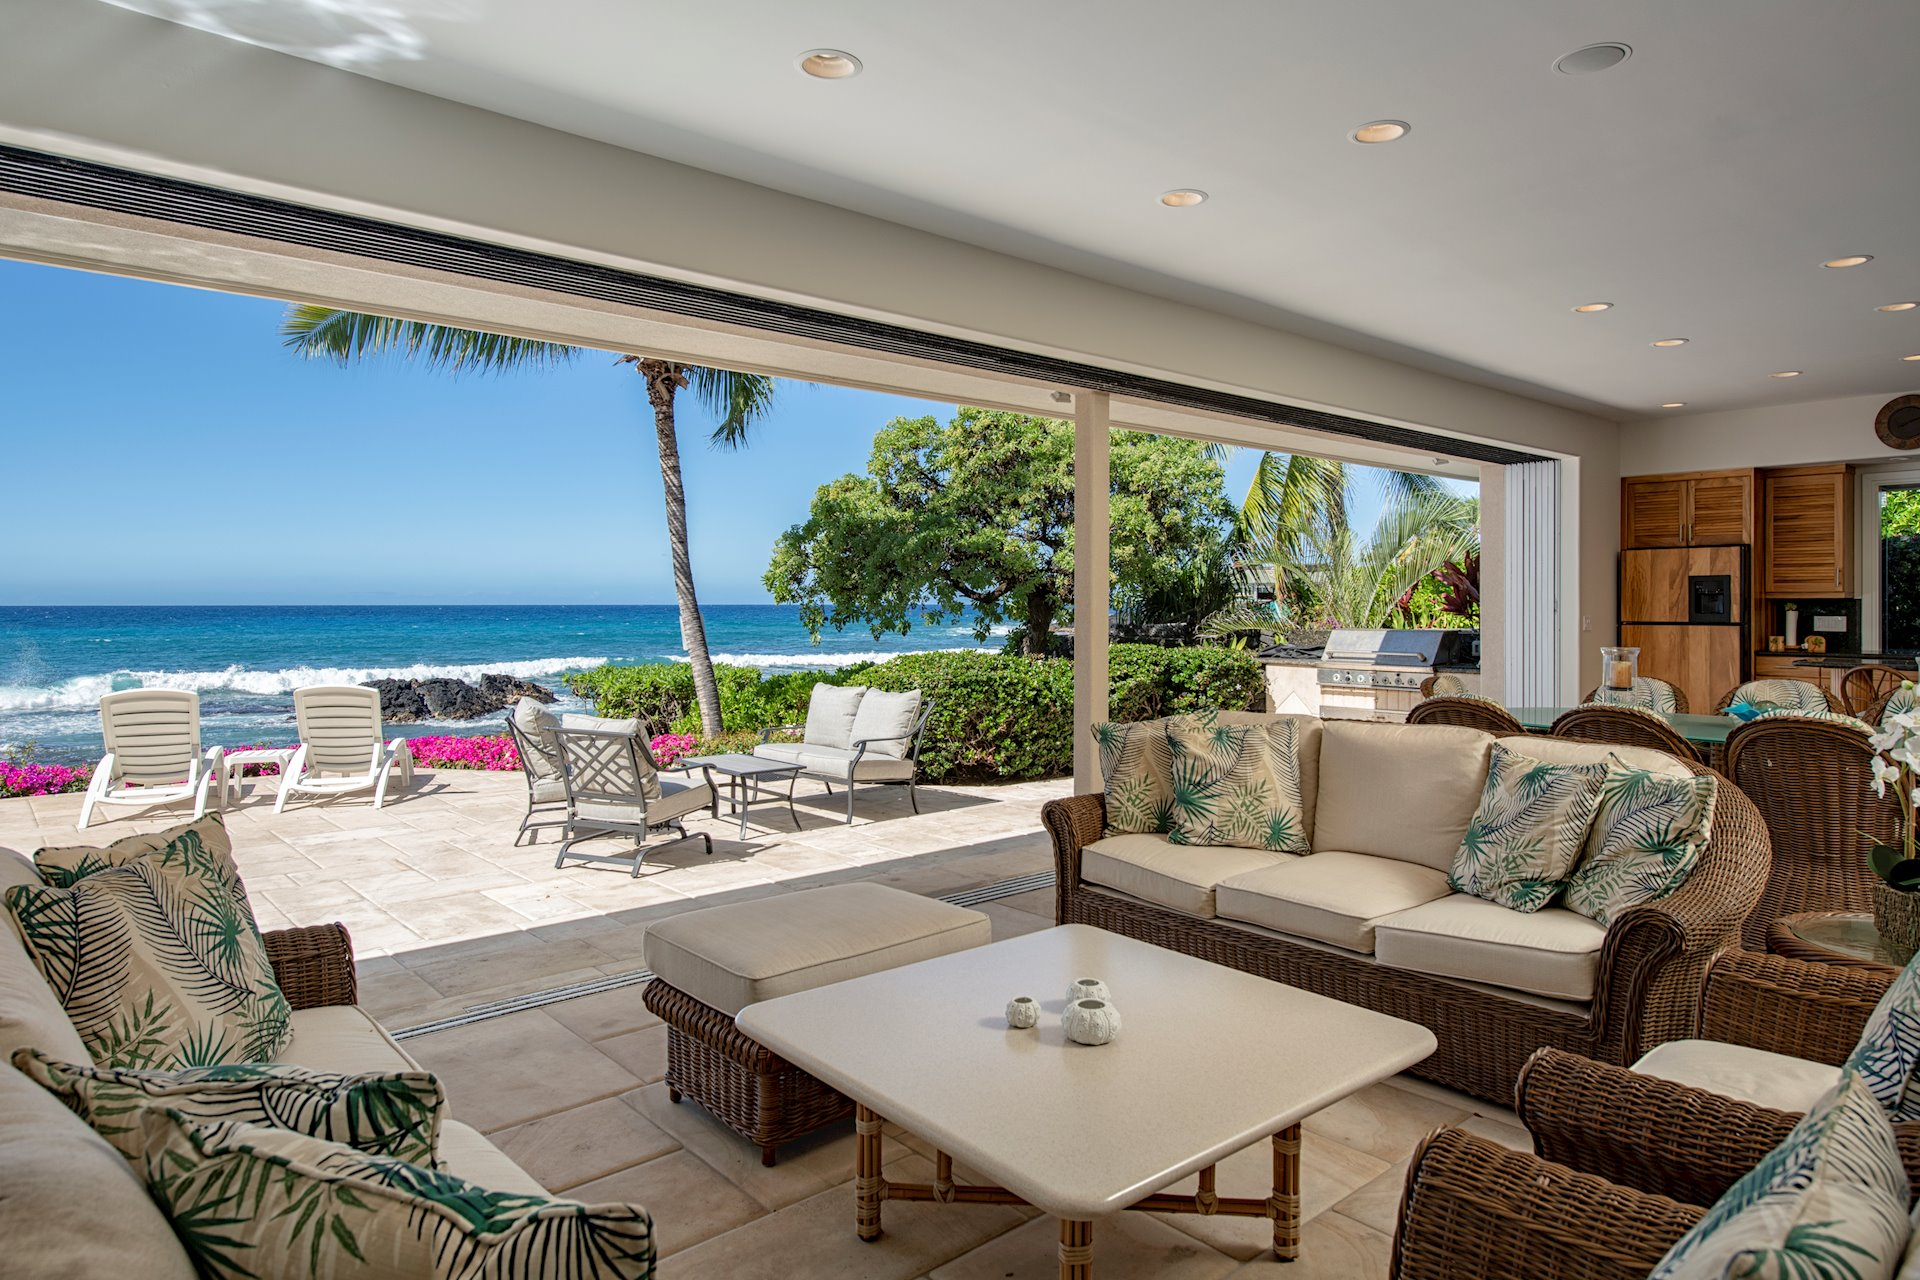 ENORMOUS COVERED LANAI WITH OUTDOOR KITCHEN